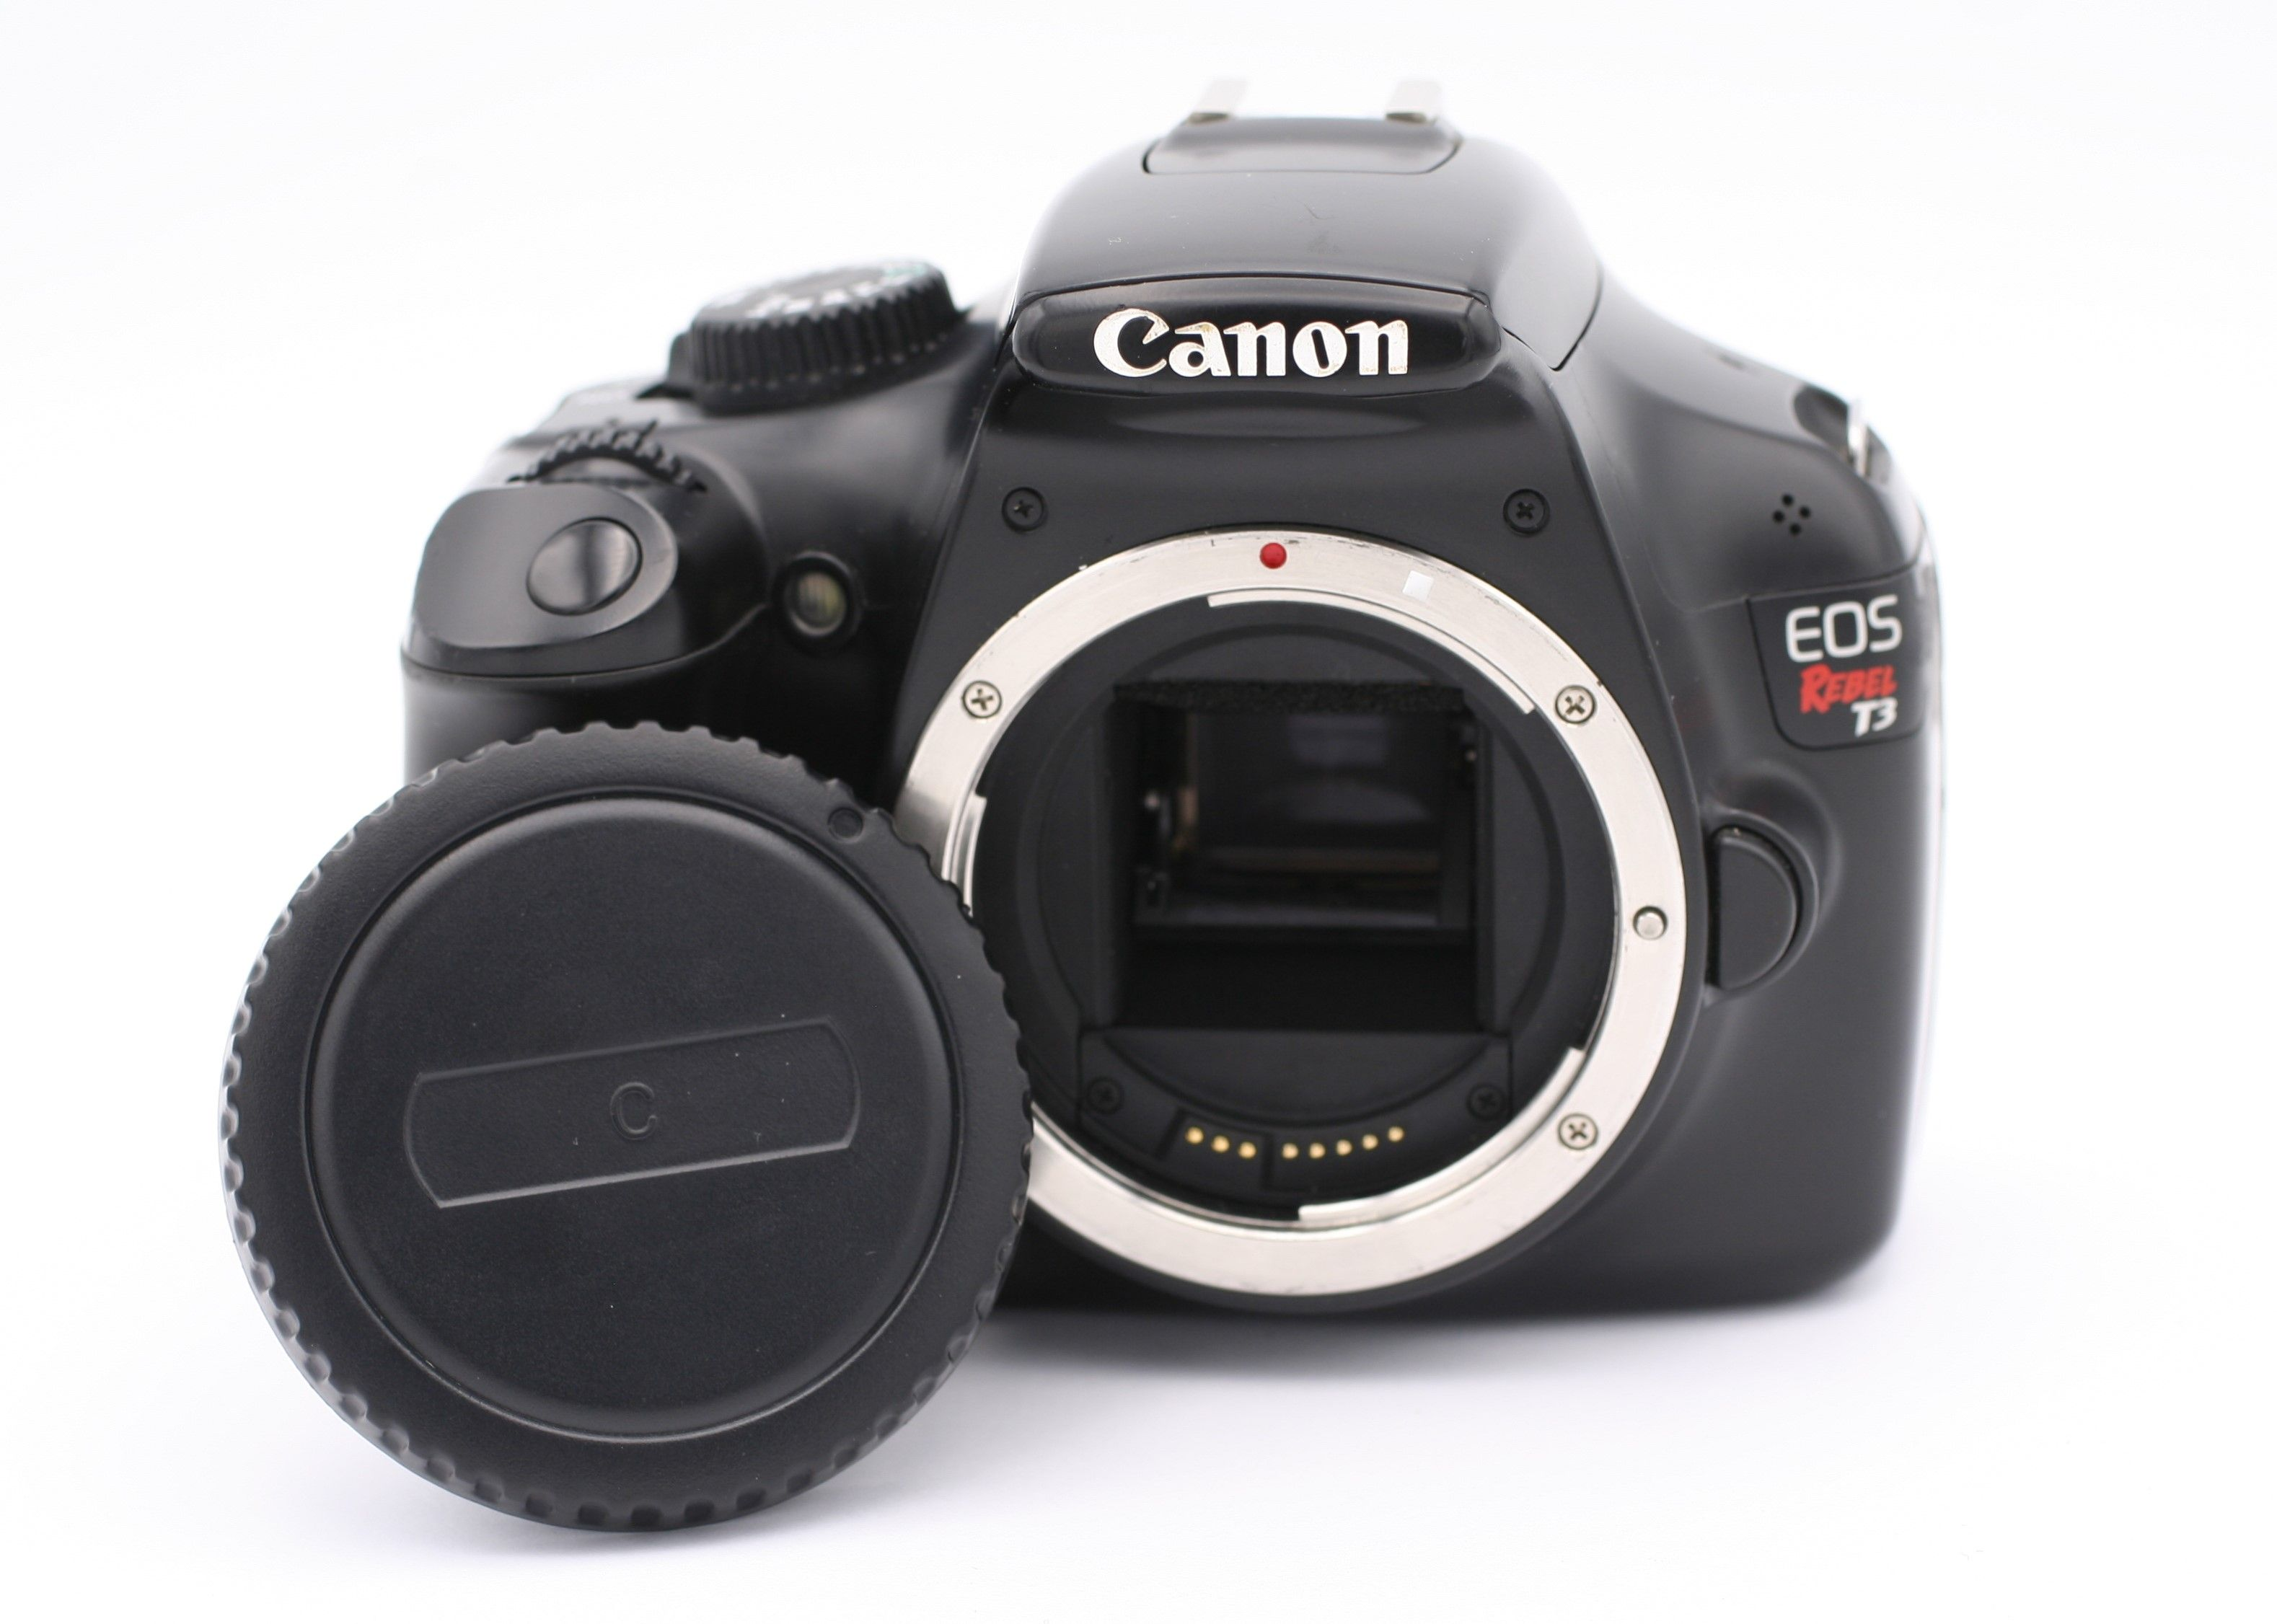 Details about Canon EOS Rebel T3 / 1100D 12 2MP Digital SLR Camera - Black  (Body Only)